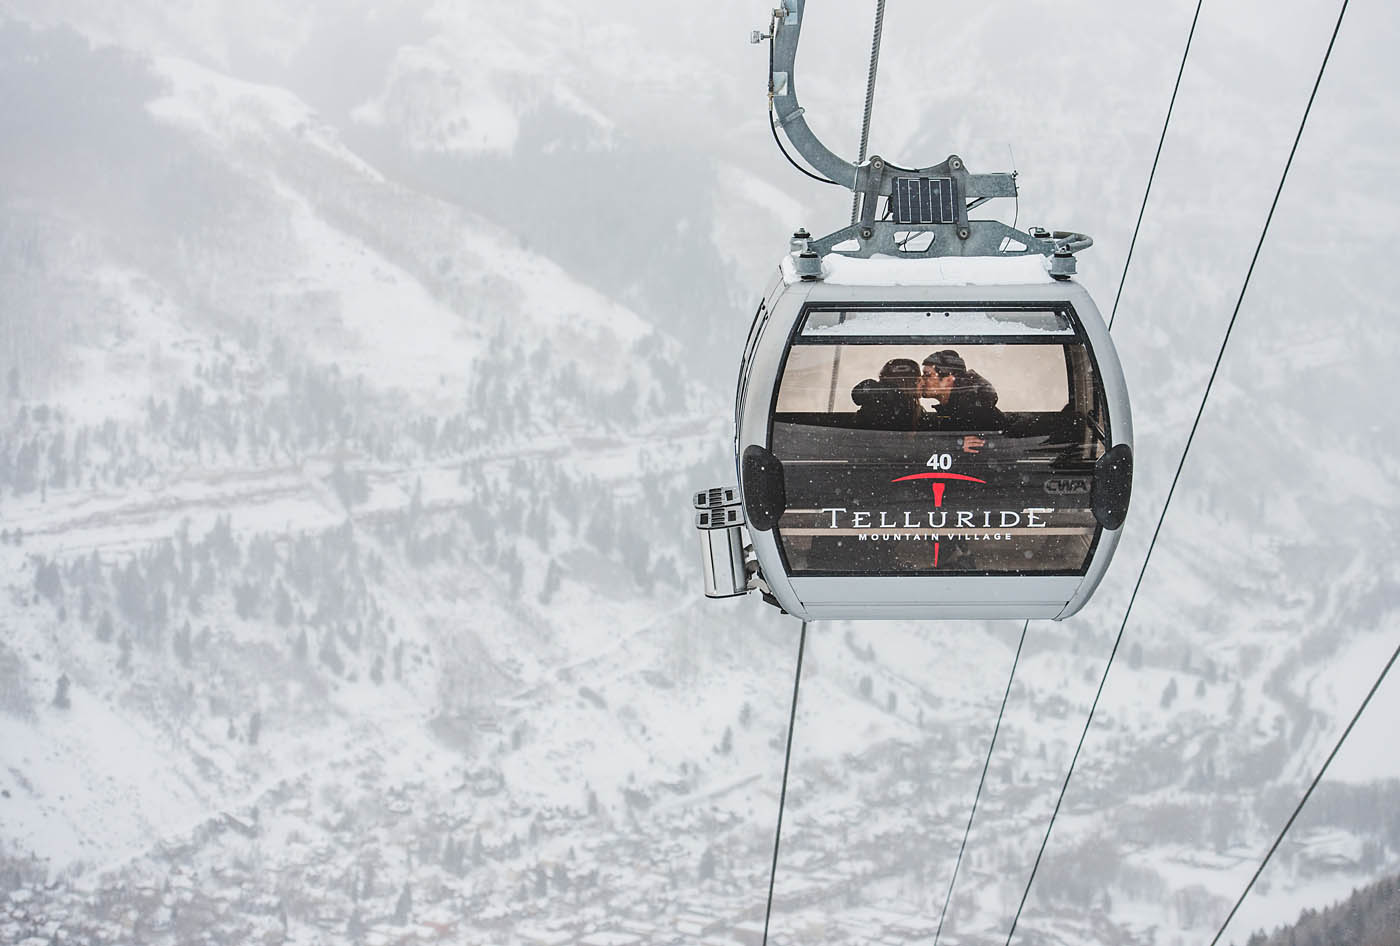 kissing-on-telluride-gondola-in-snow.jpg